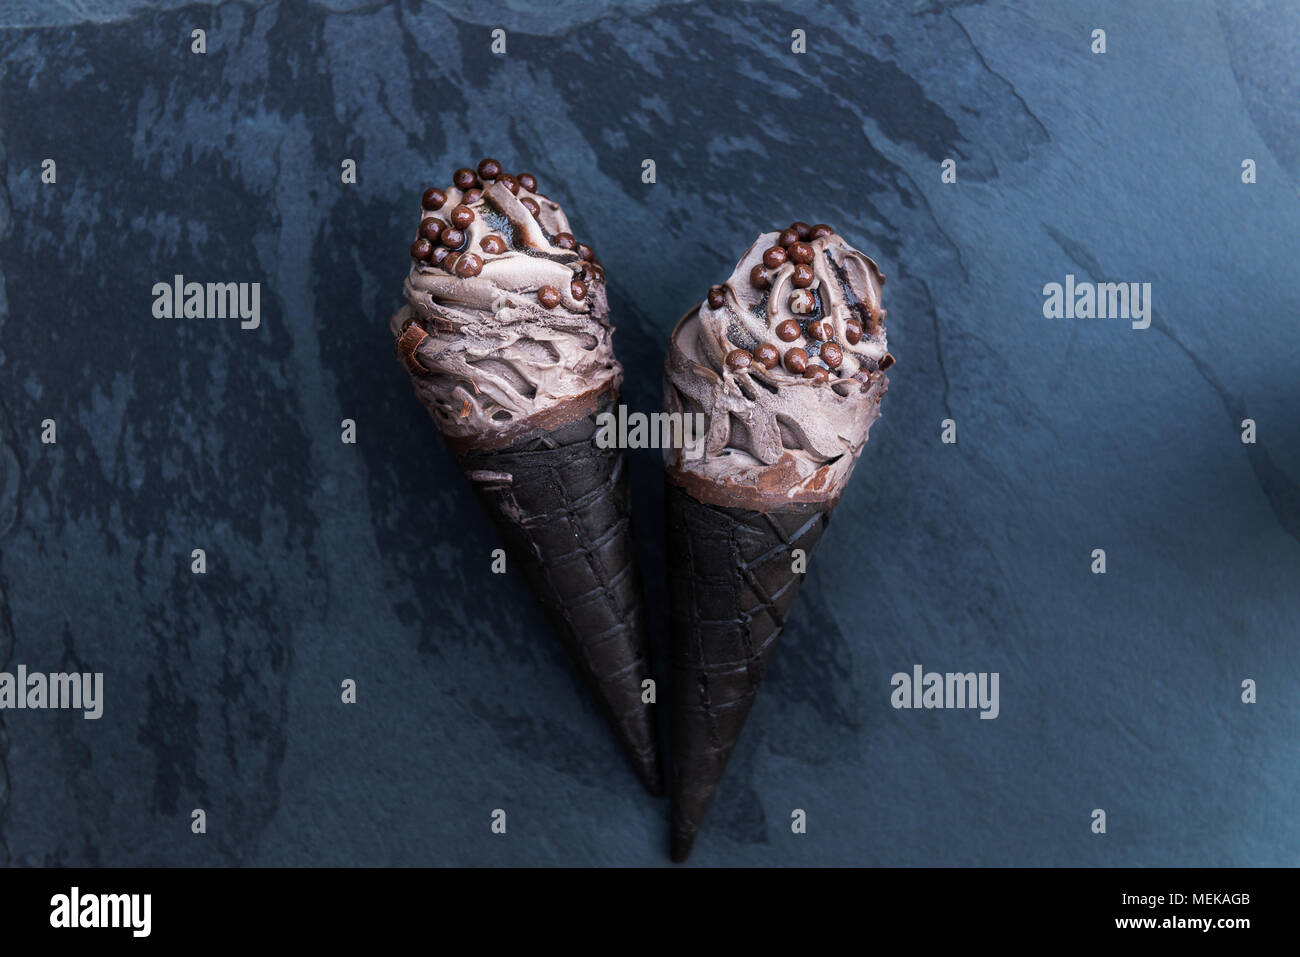 Double Chocolate Ice Creams with Black Waffle Cones on Dark Background - Stock Image